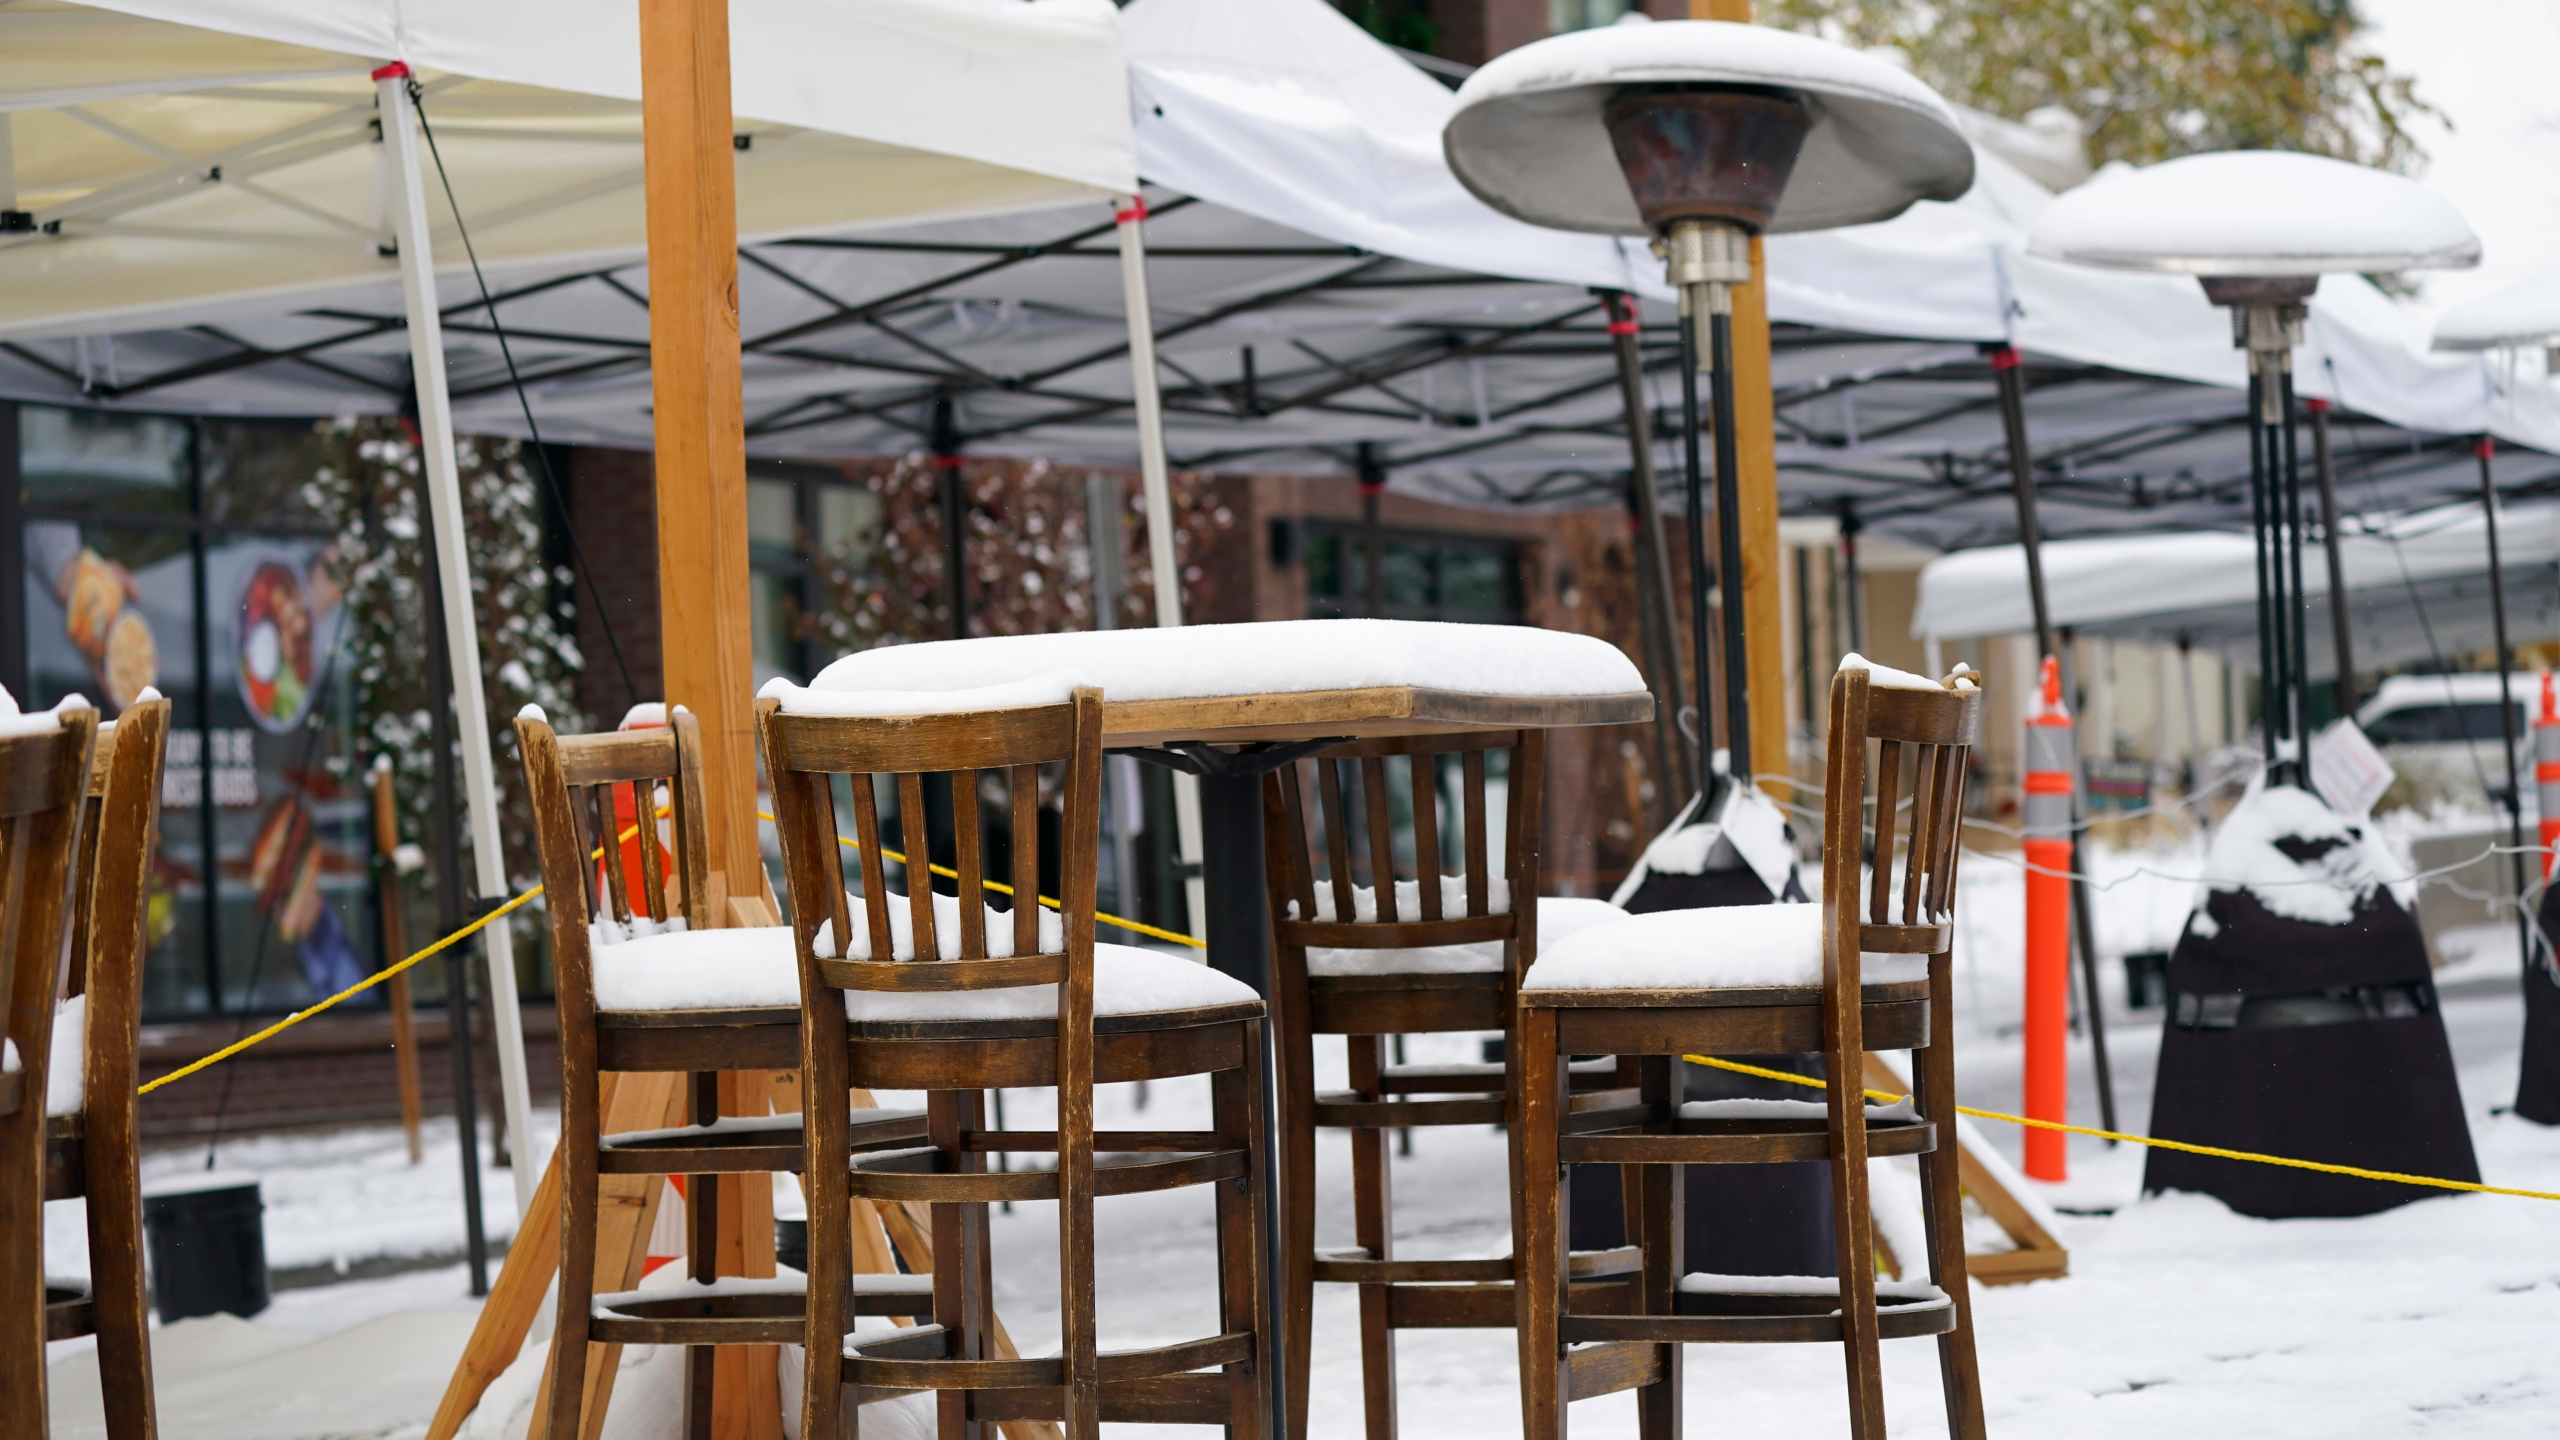 Outdoor seating set up to meet state COVID-19 protocols for bars is covered in snow ouitside a bar after an autumn storm swept over the intermountain West Monday, Oct. 26, 2020, in Denver. (AP Photo/David Zalubowski)